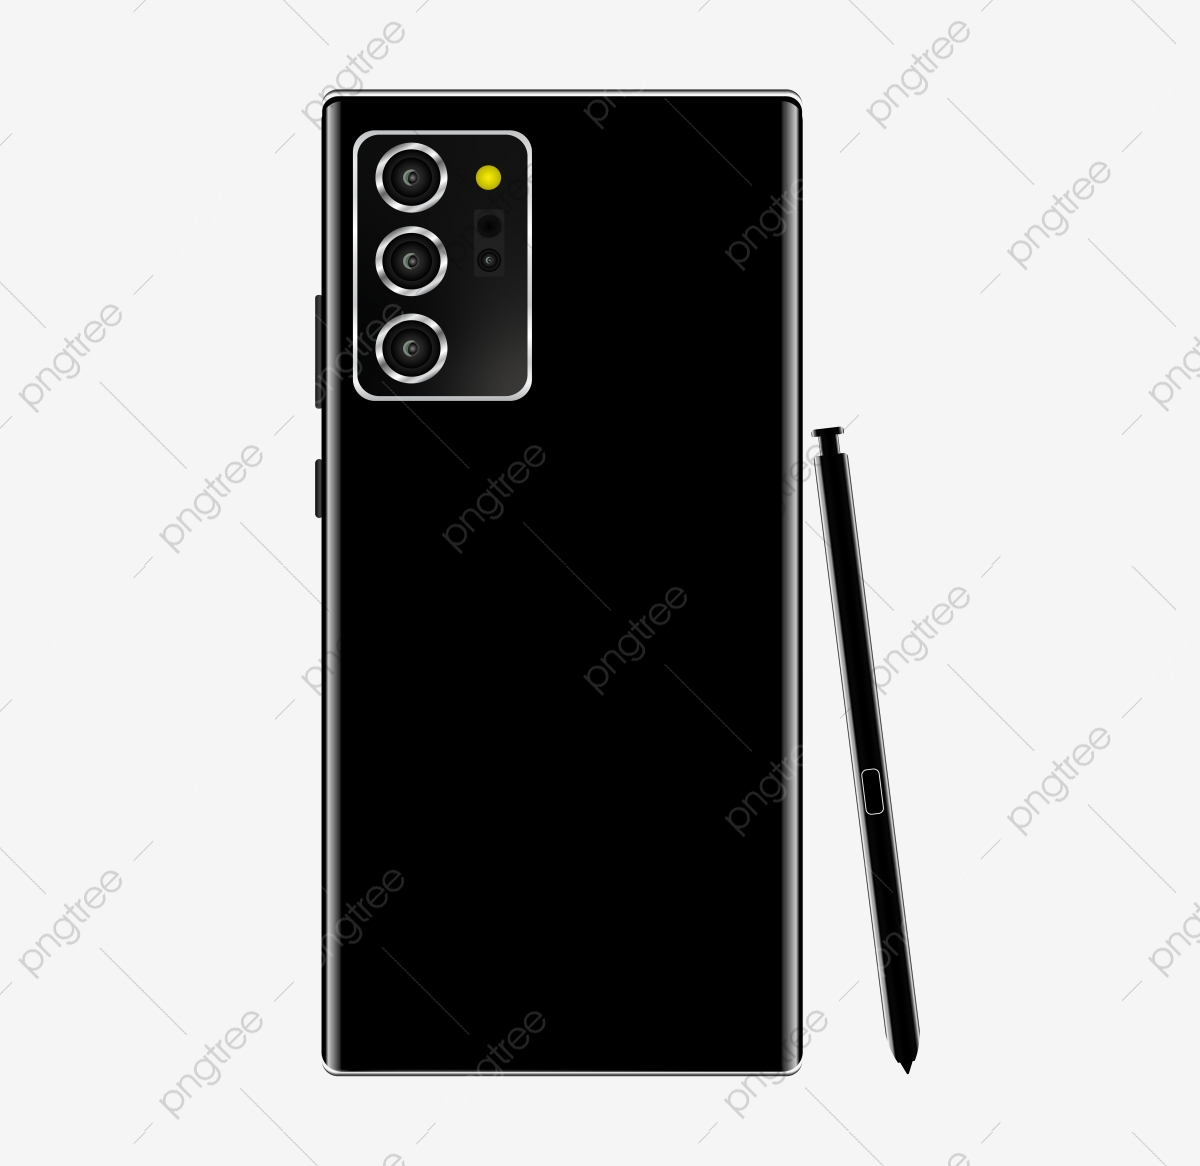 Back View Samsung Galaxy Note 20 Mockup Screen Mobile Mockup Png And Vector With Transparent Background For Free Download